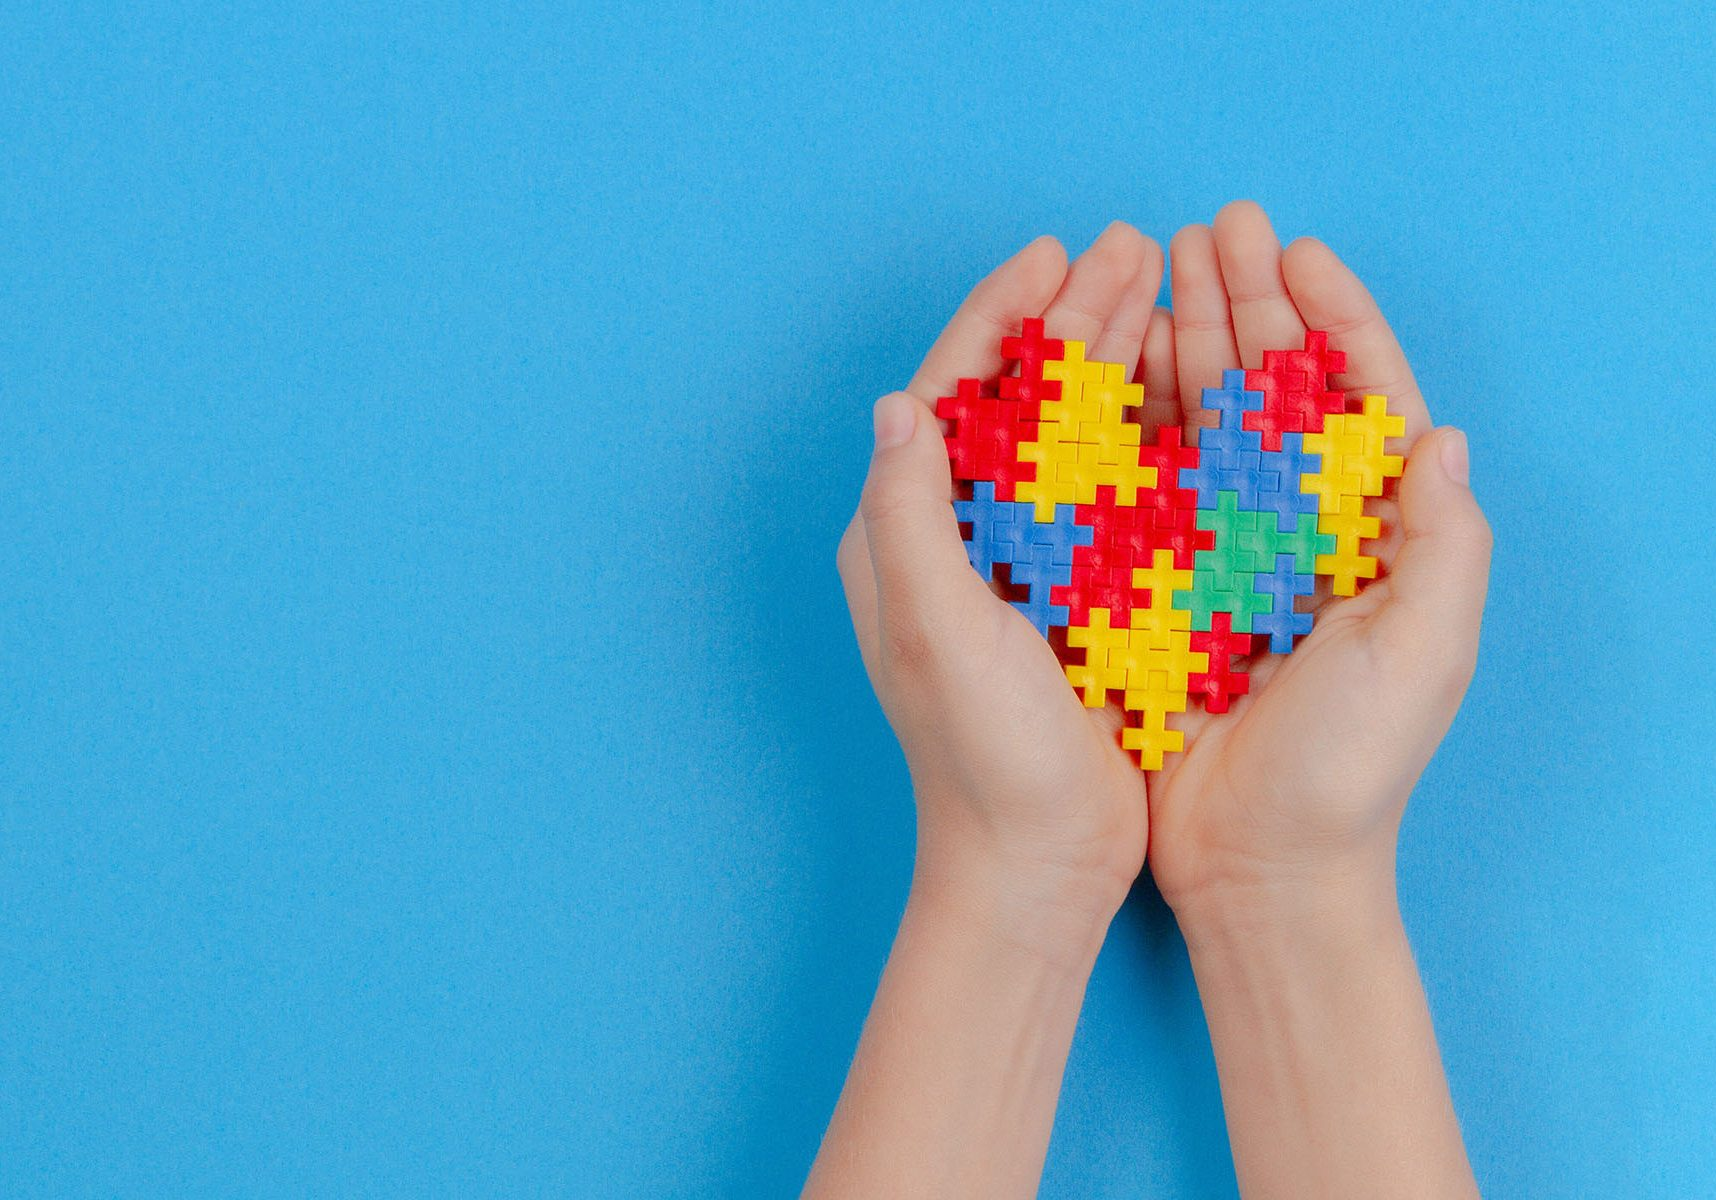 Kid hand holding colorful heart on blue background. World autism awareness day concept.